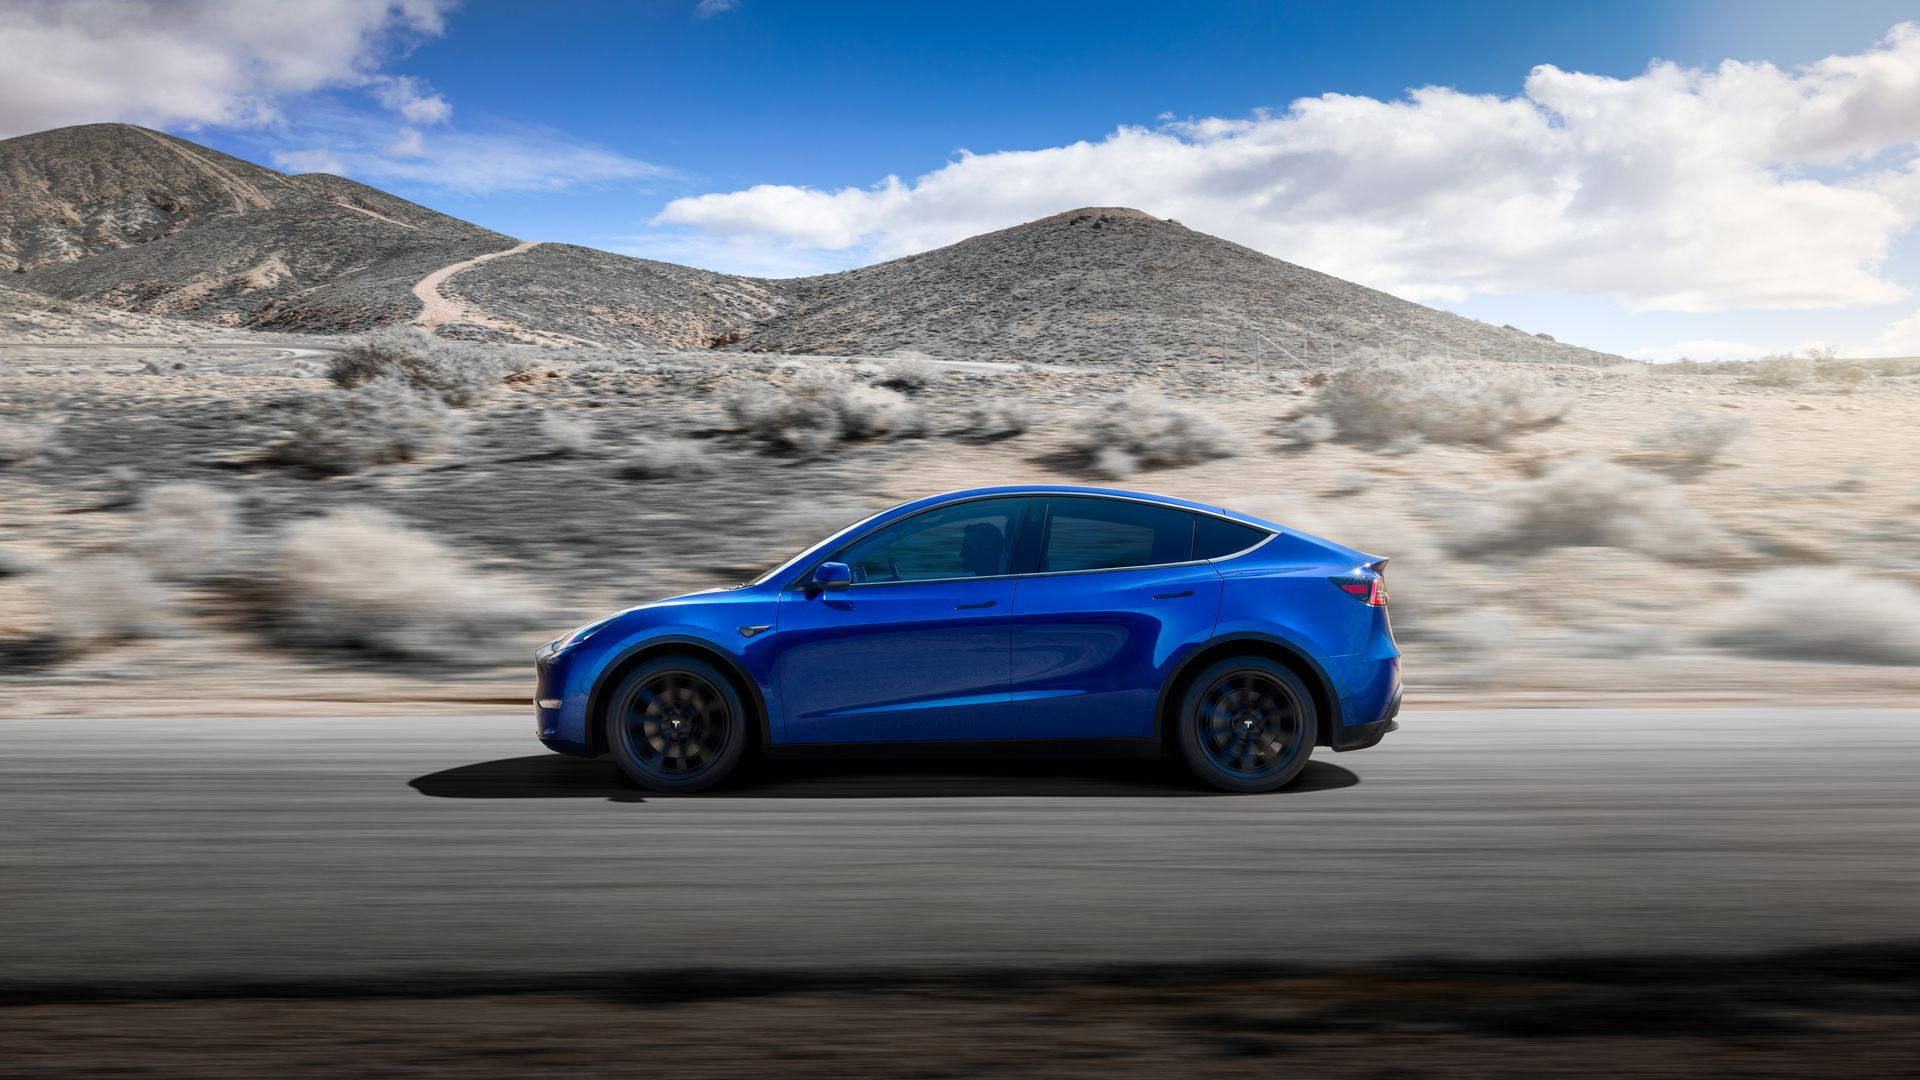 Photo of the newly unveiled Tesla Model Y